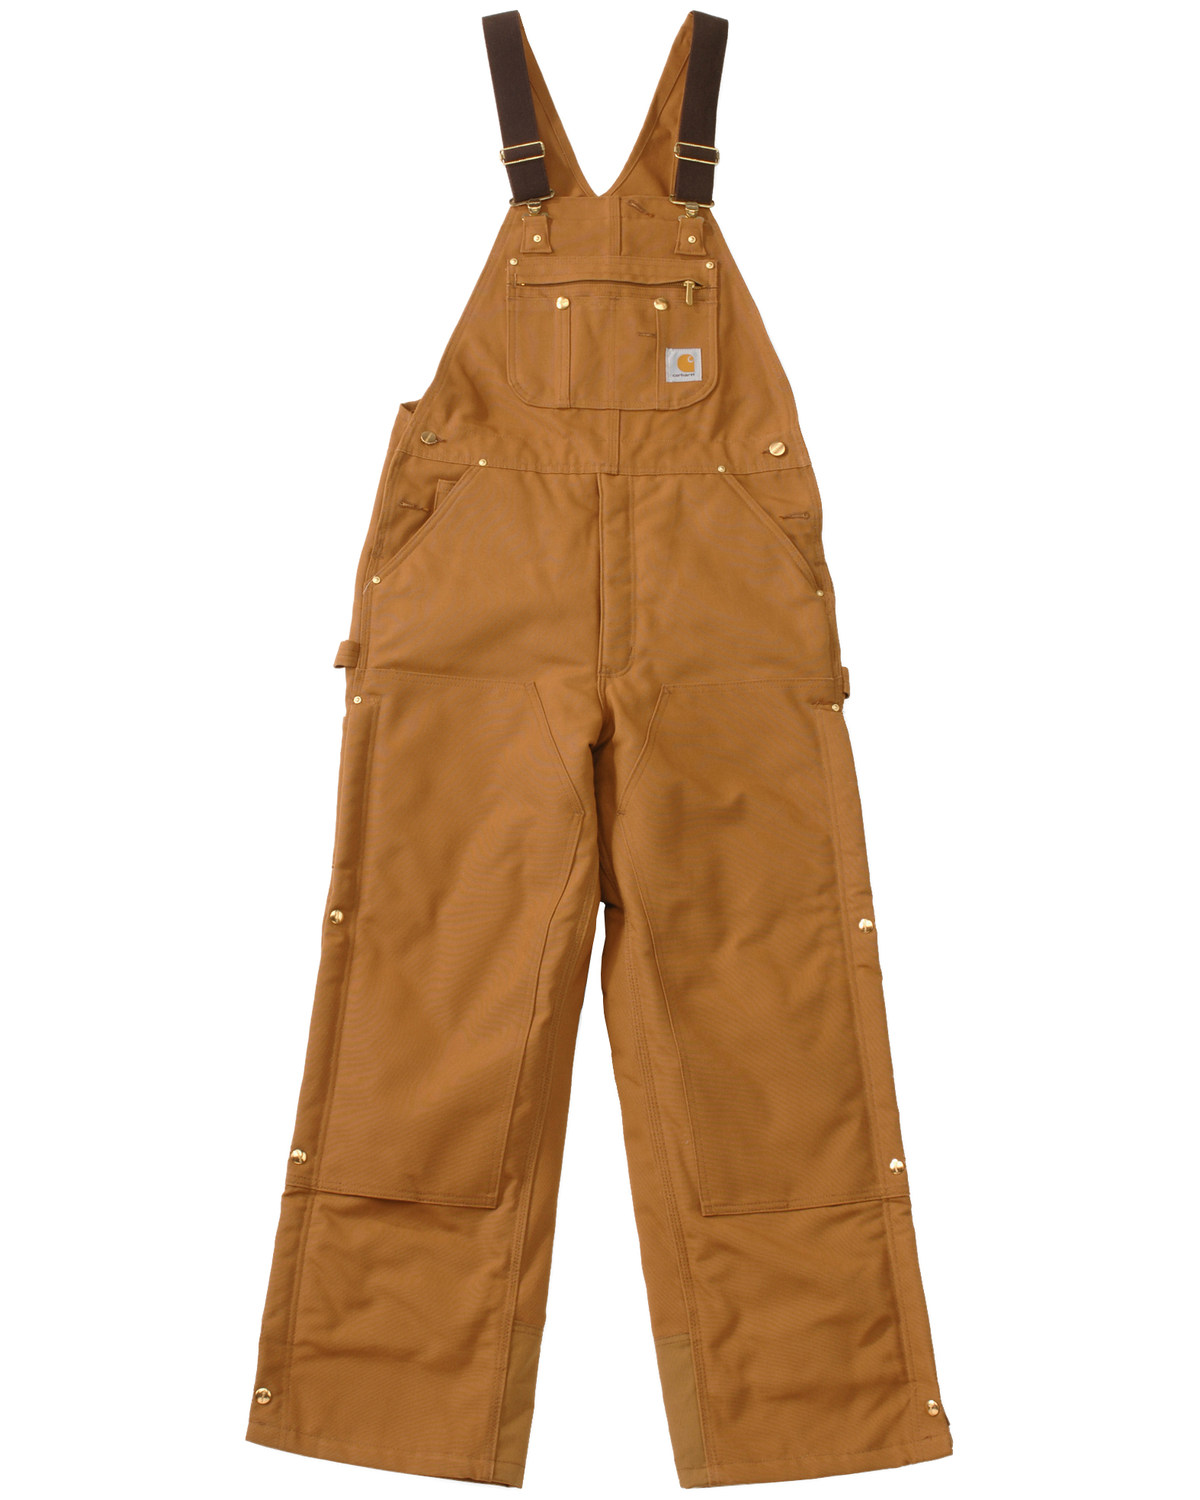 e539fba0eb Zoomed Image Carhartt Men's Duck Zip-To-Thigh Quilt Lined Bib Overall,  Brown, hi